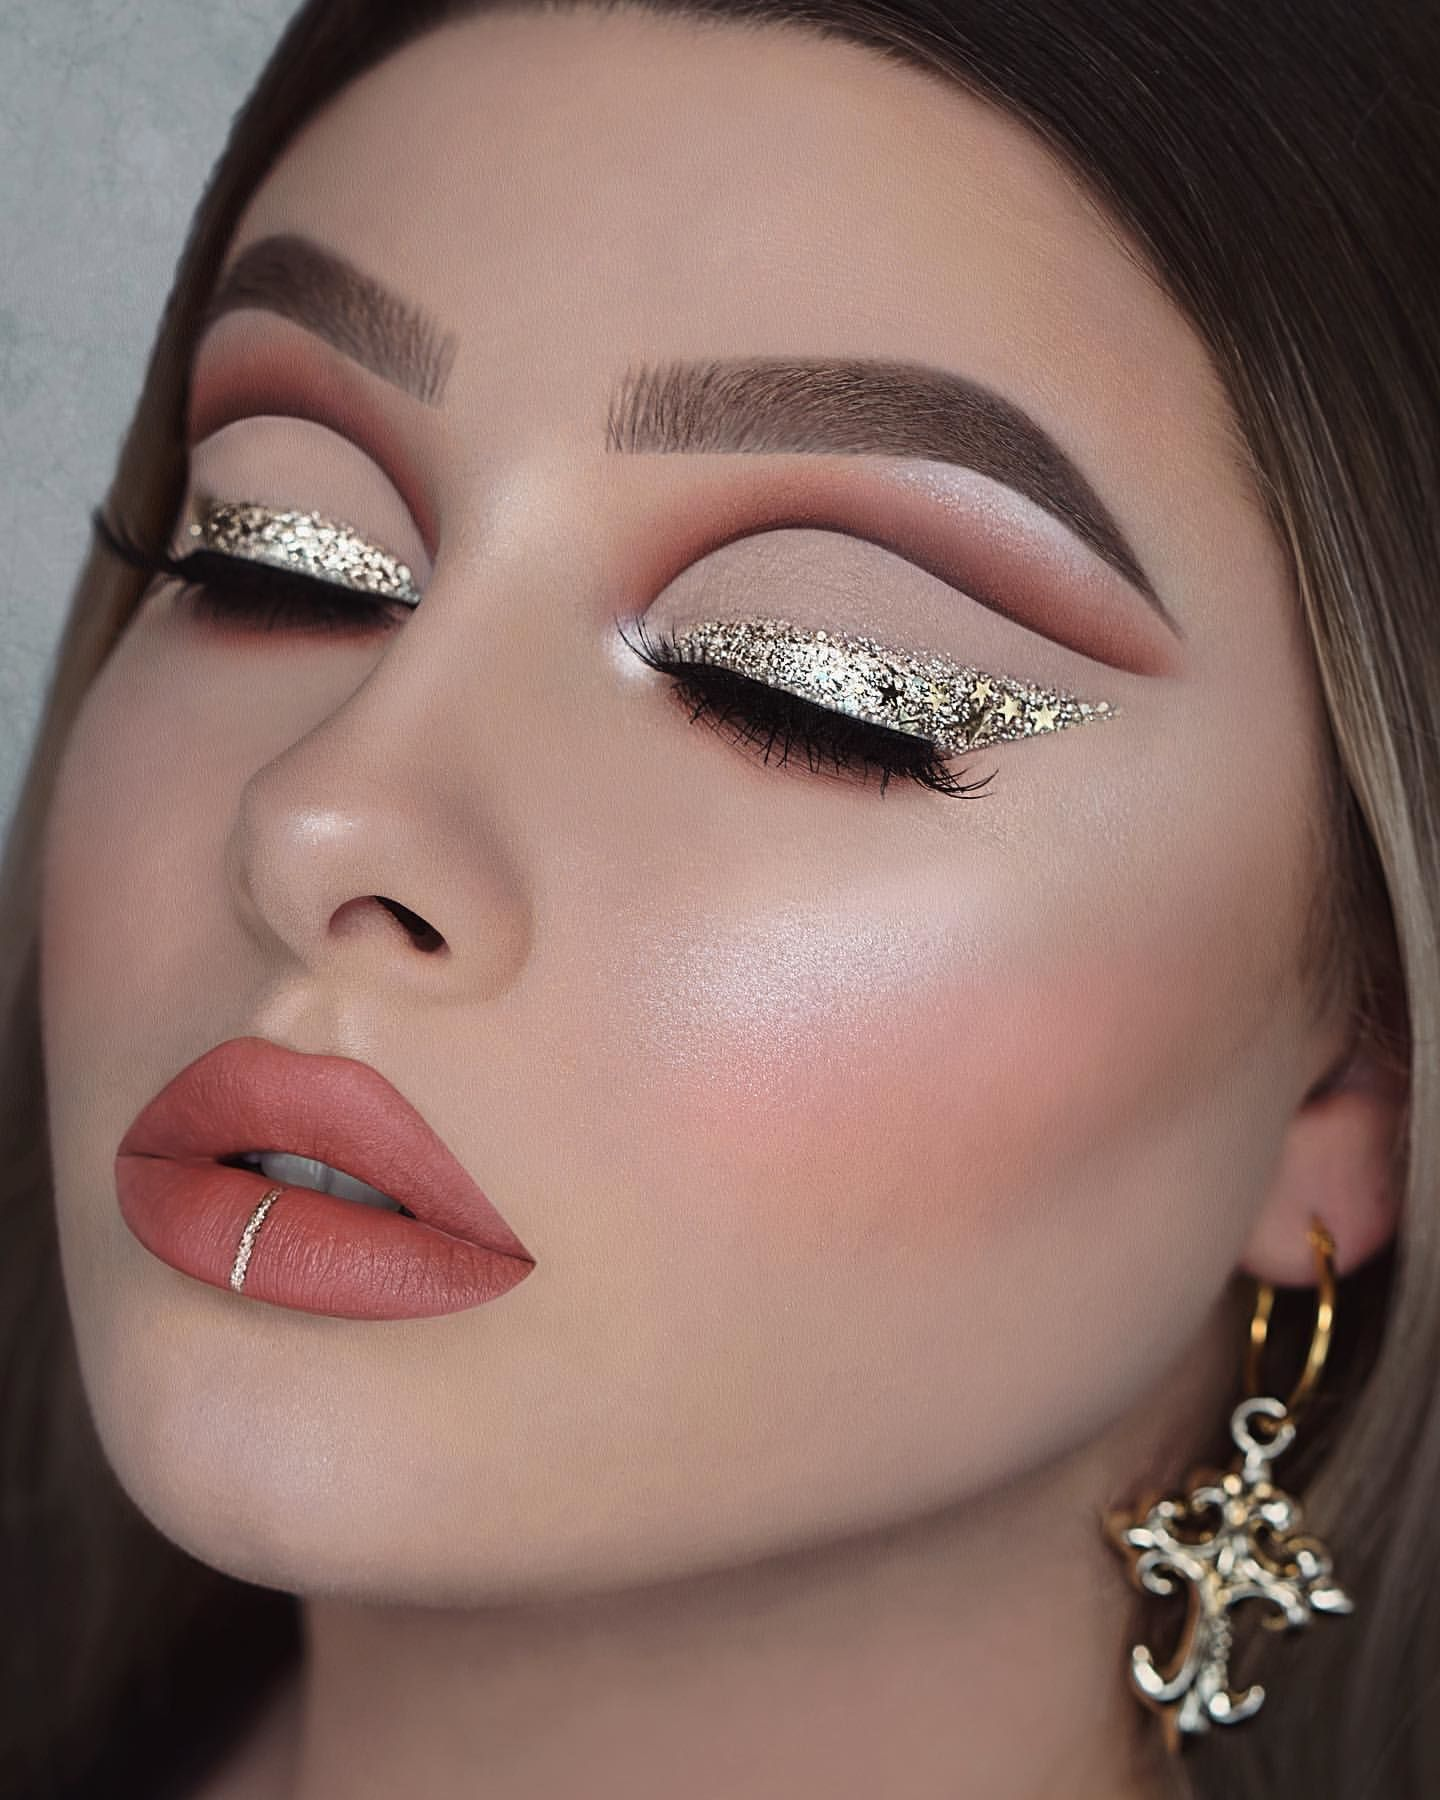 60 Dramatic Makeup Looks Make You Glow In 2020 Page 2 Of 9 In